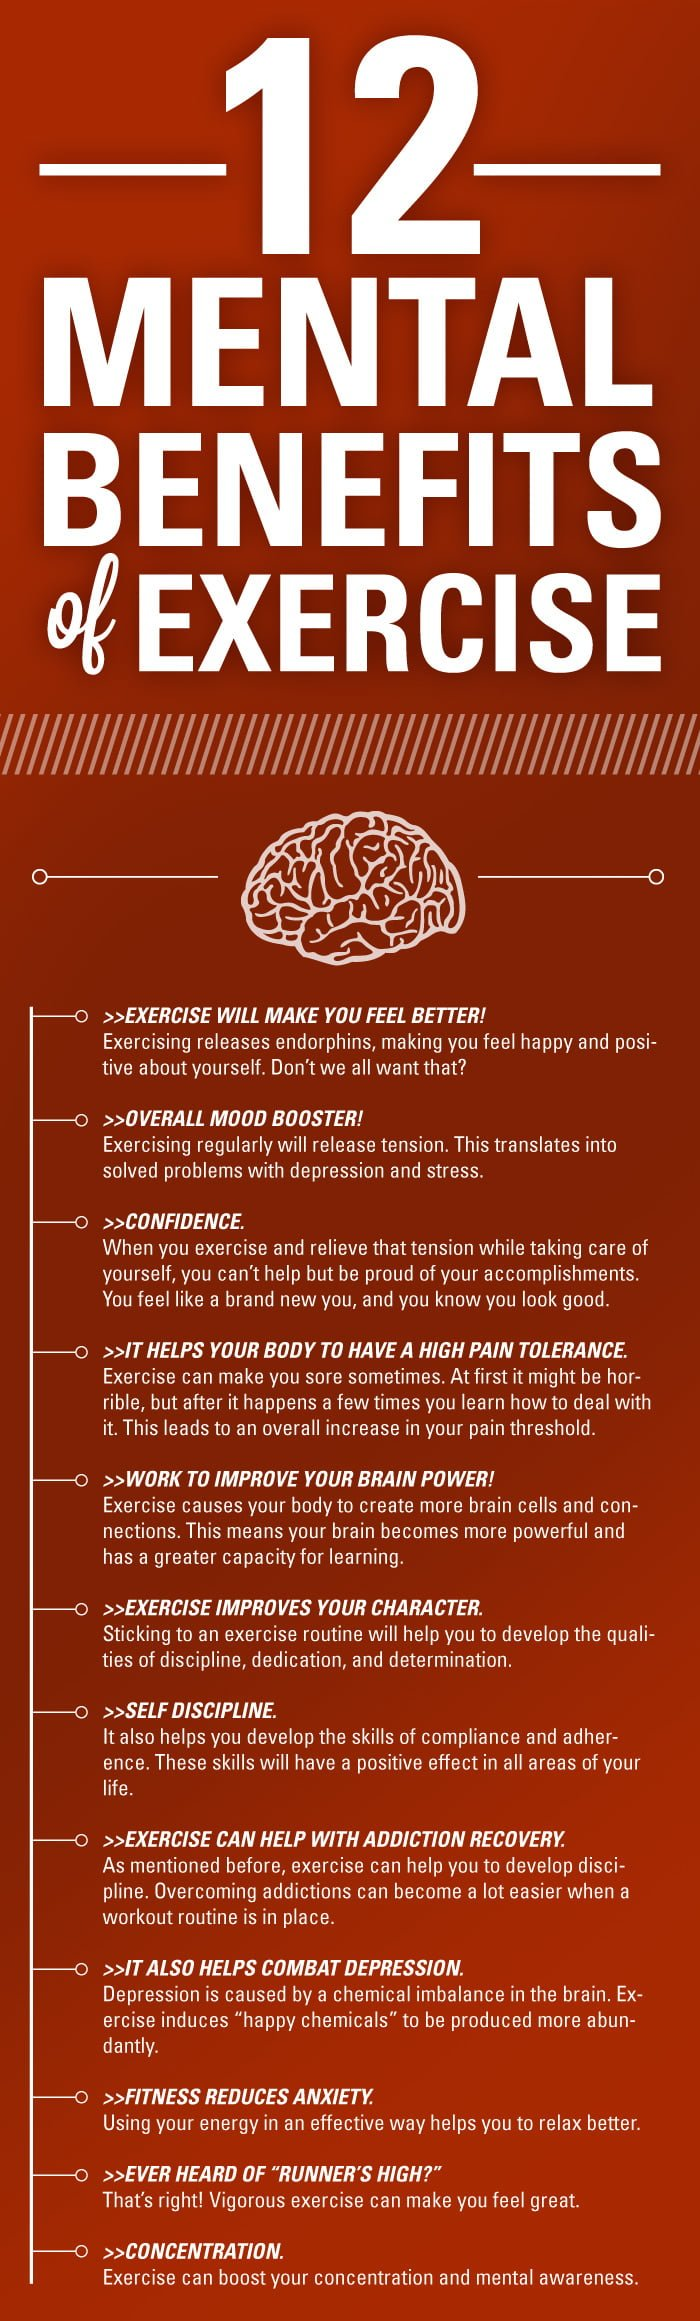 12-mental-benefits-of-exercise